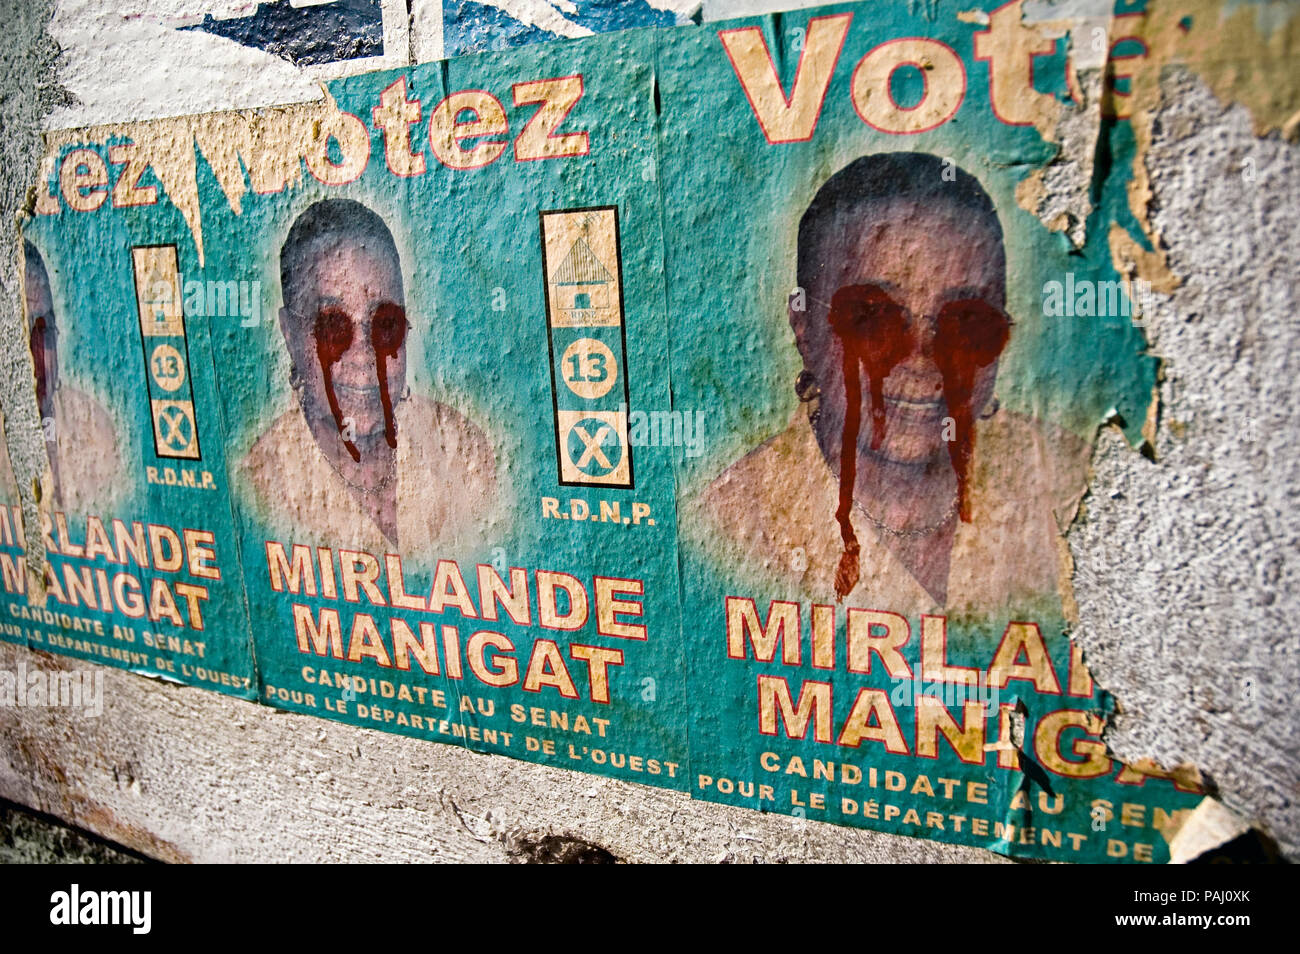 Defaced Political propaganda.  22 February 2006 - Mirlande Manigat, a RDNP candidate for the Senate in the West Department, withdrew from the election when her husband Leslie Manigat lost the presidency to Renee Preval. Stock Photo